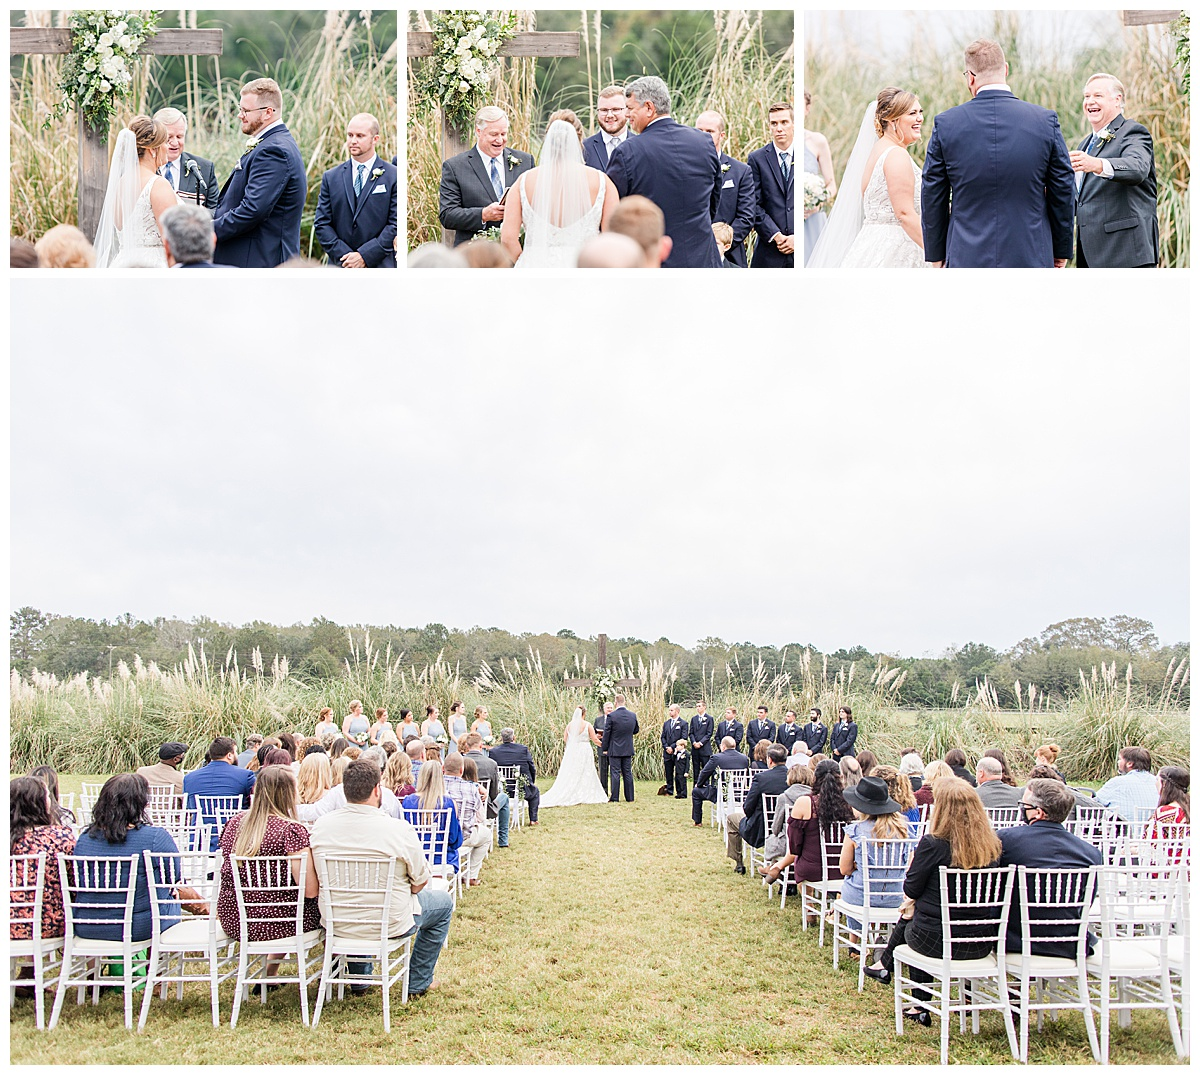 newlyweds exchange vows during outdoor winter wedding ceremony at Laurel Hill Farm